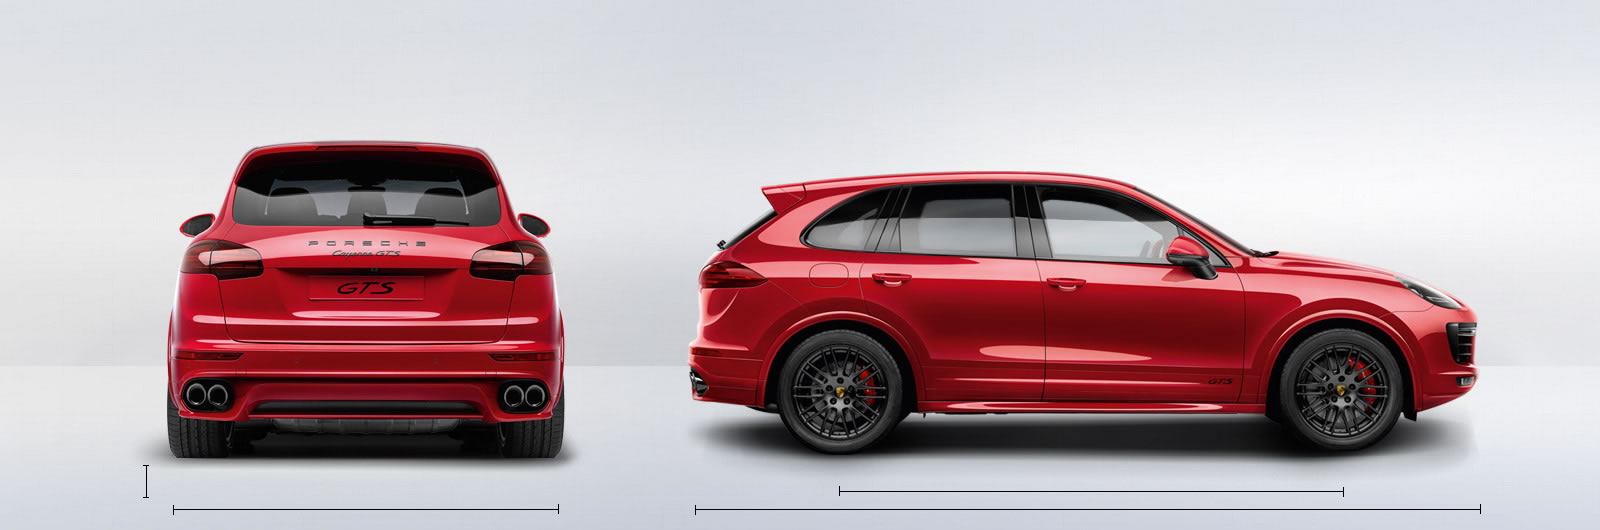 Cayenne GTS Specifications